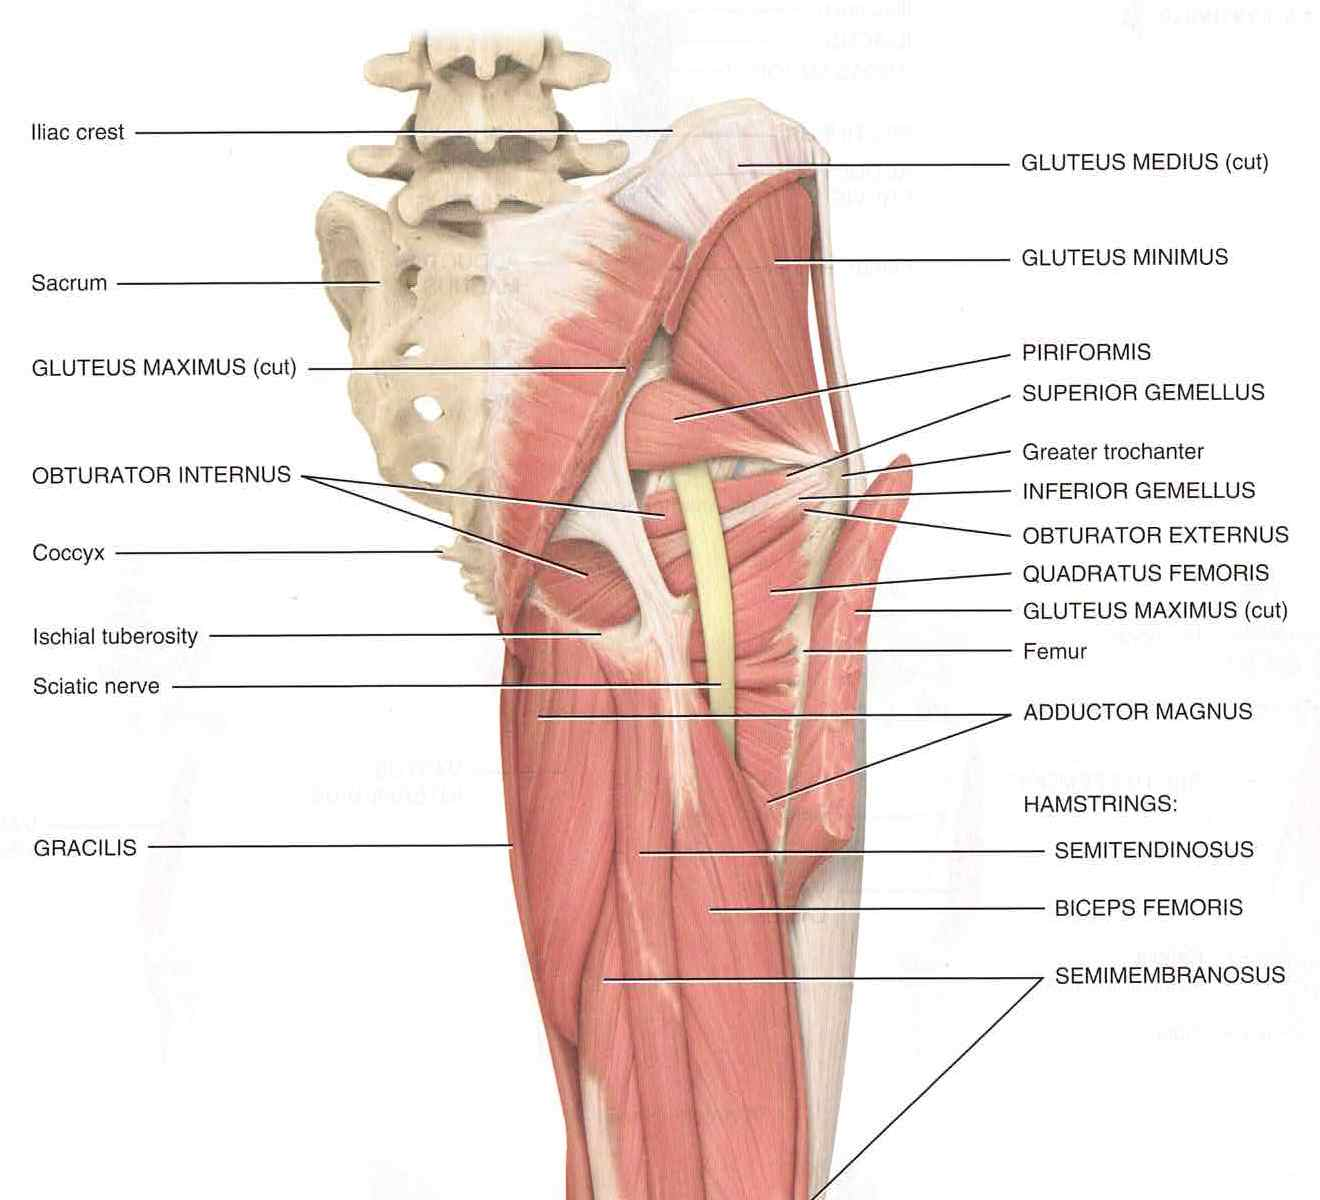 Piriformis Muscle picture used from Principles of Anatomy and Physiology